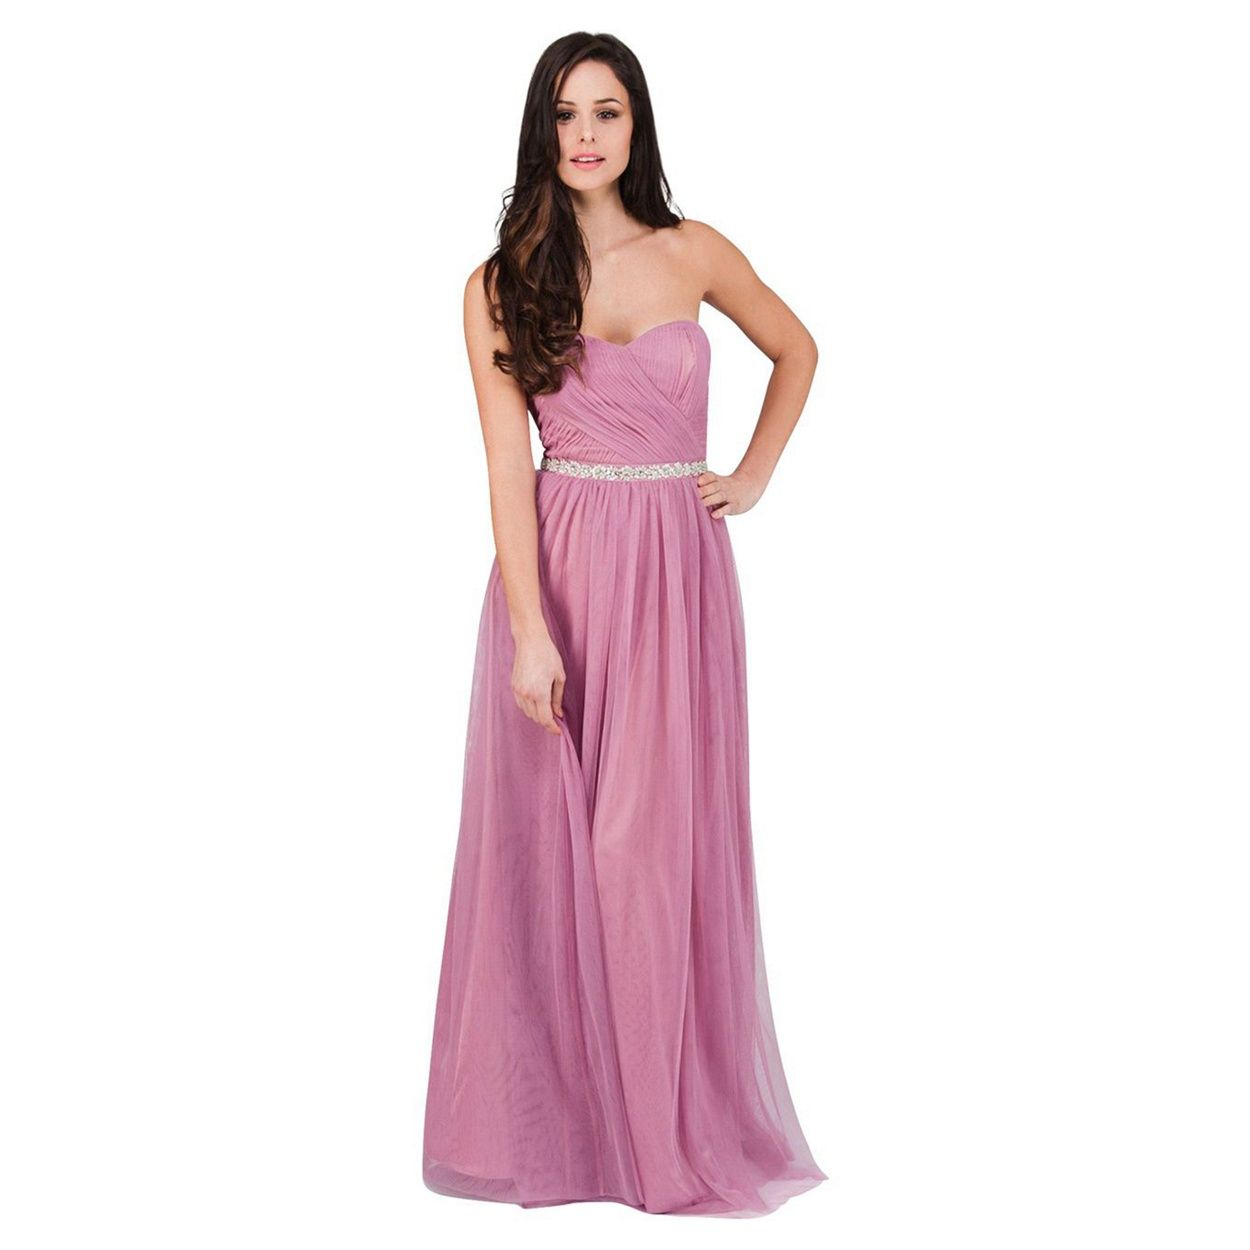 Melanie sykes wedding dress  Play up to your feminine side and be the best dressed at the party